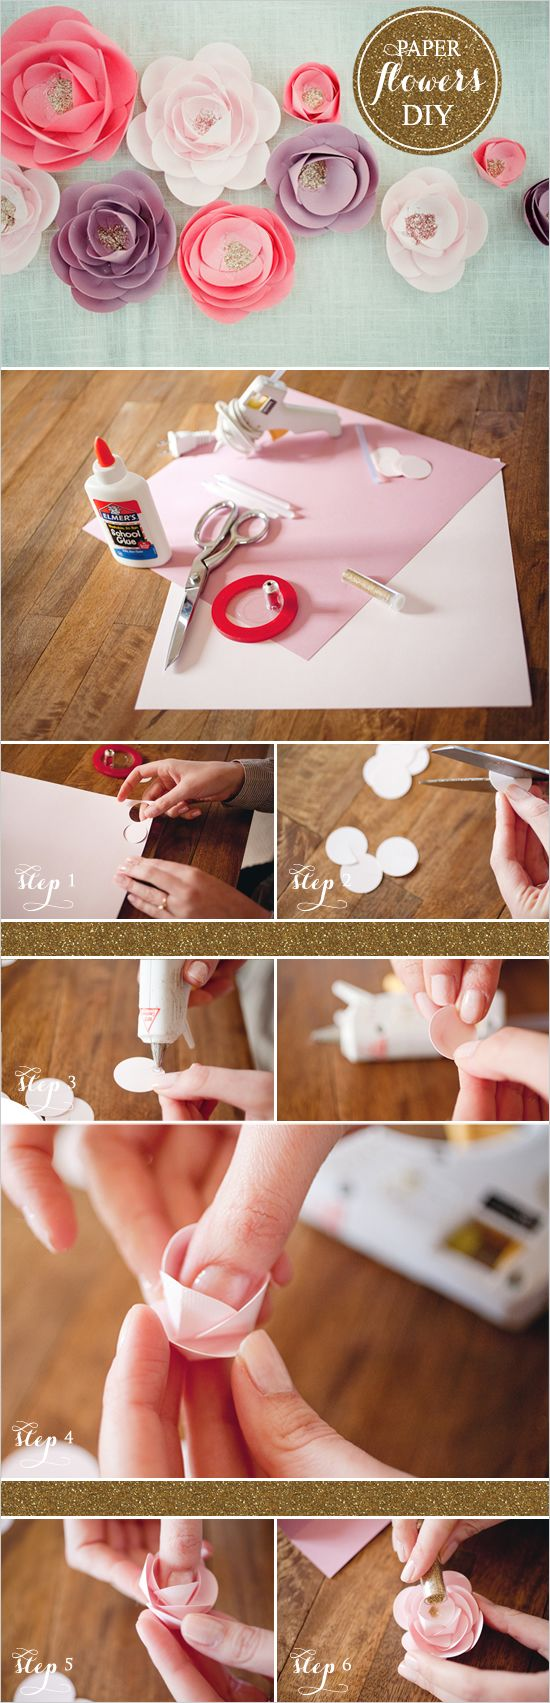 How to make beautiful paper flowers